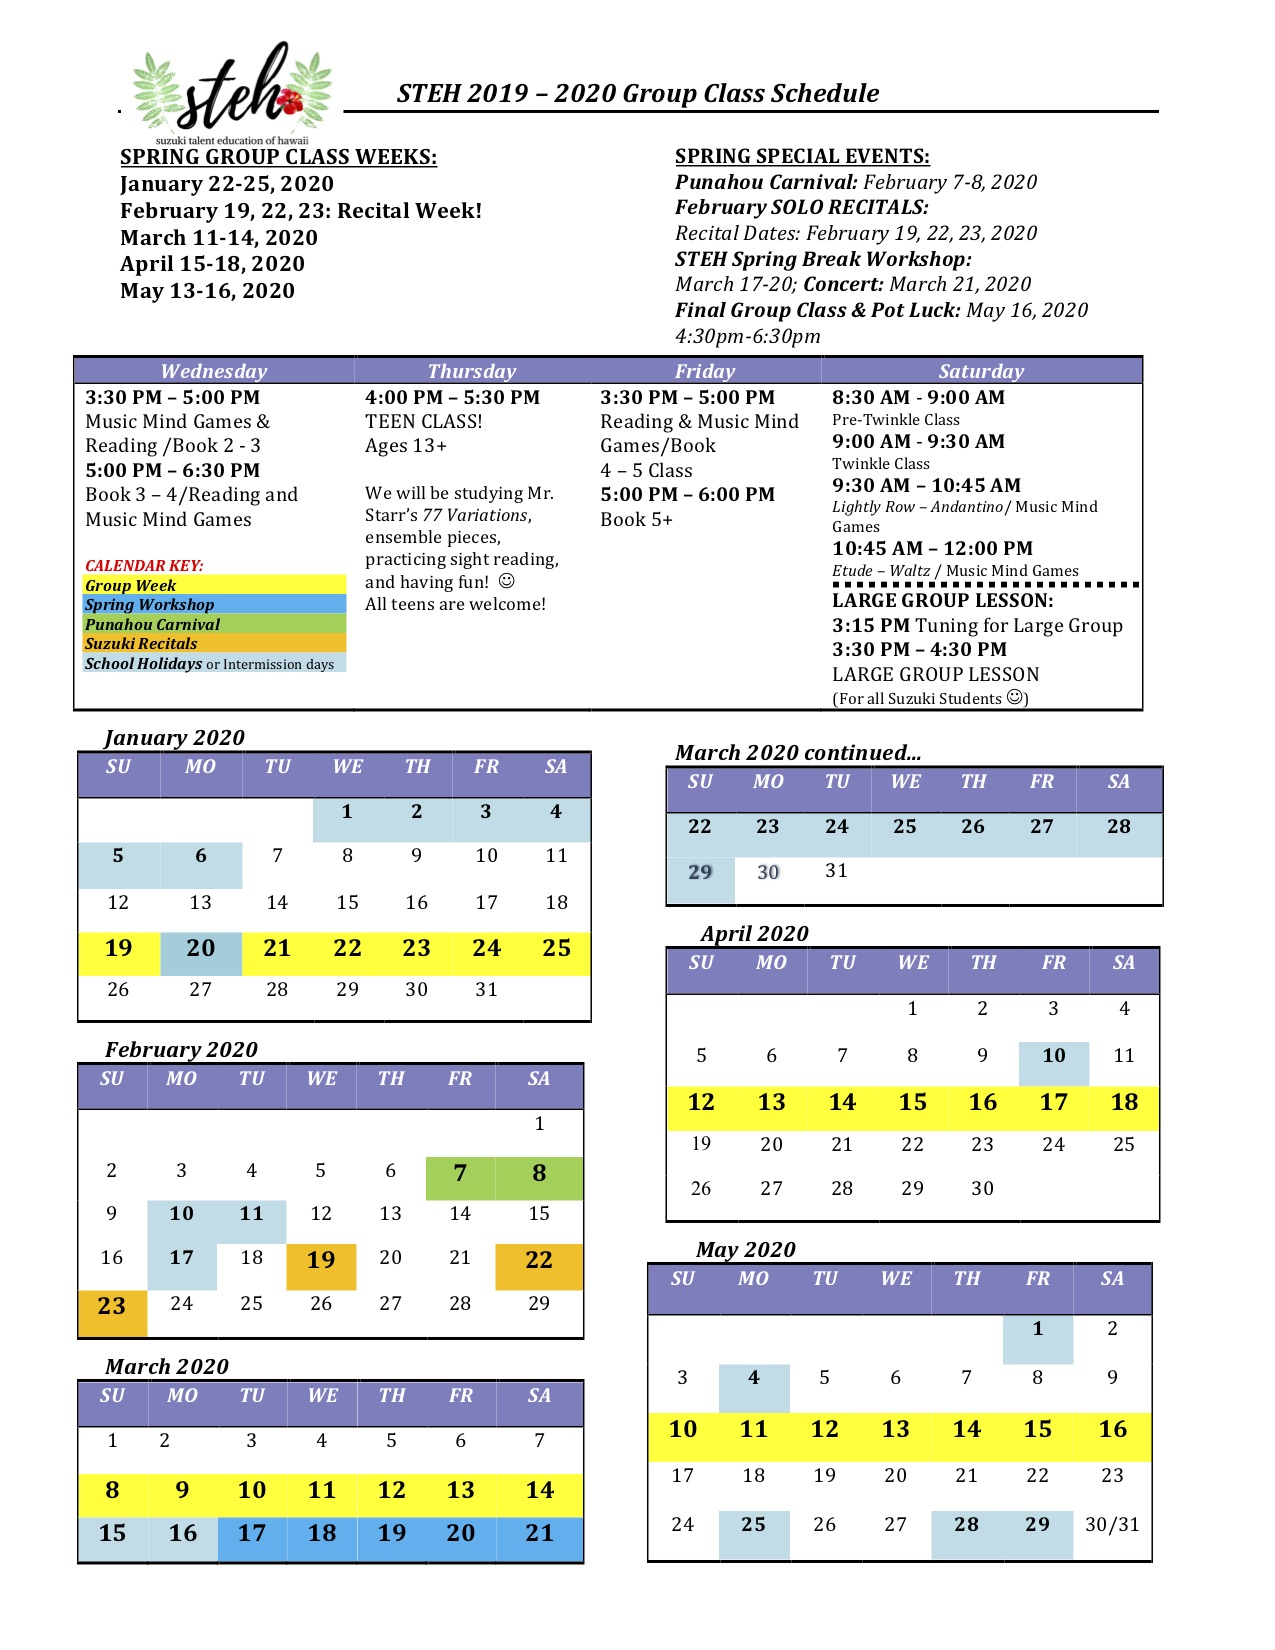 FINAL 2019 - 2020 STEH Group Class Schedule